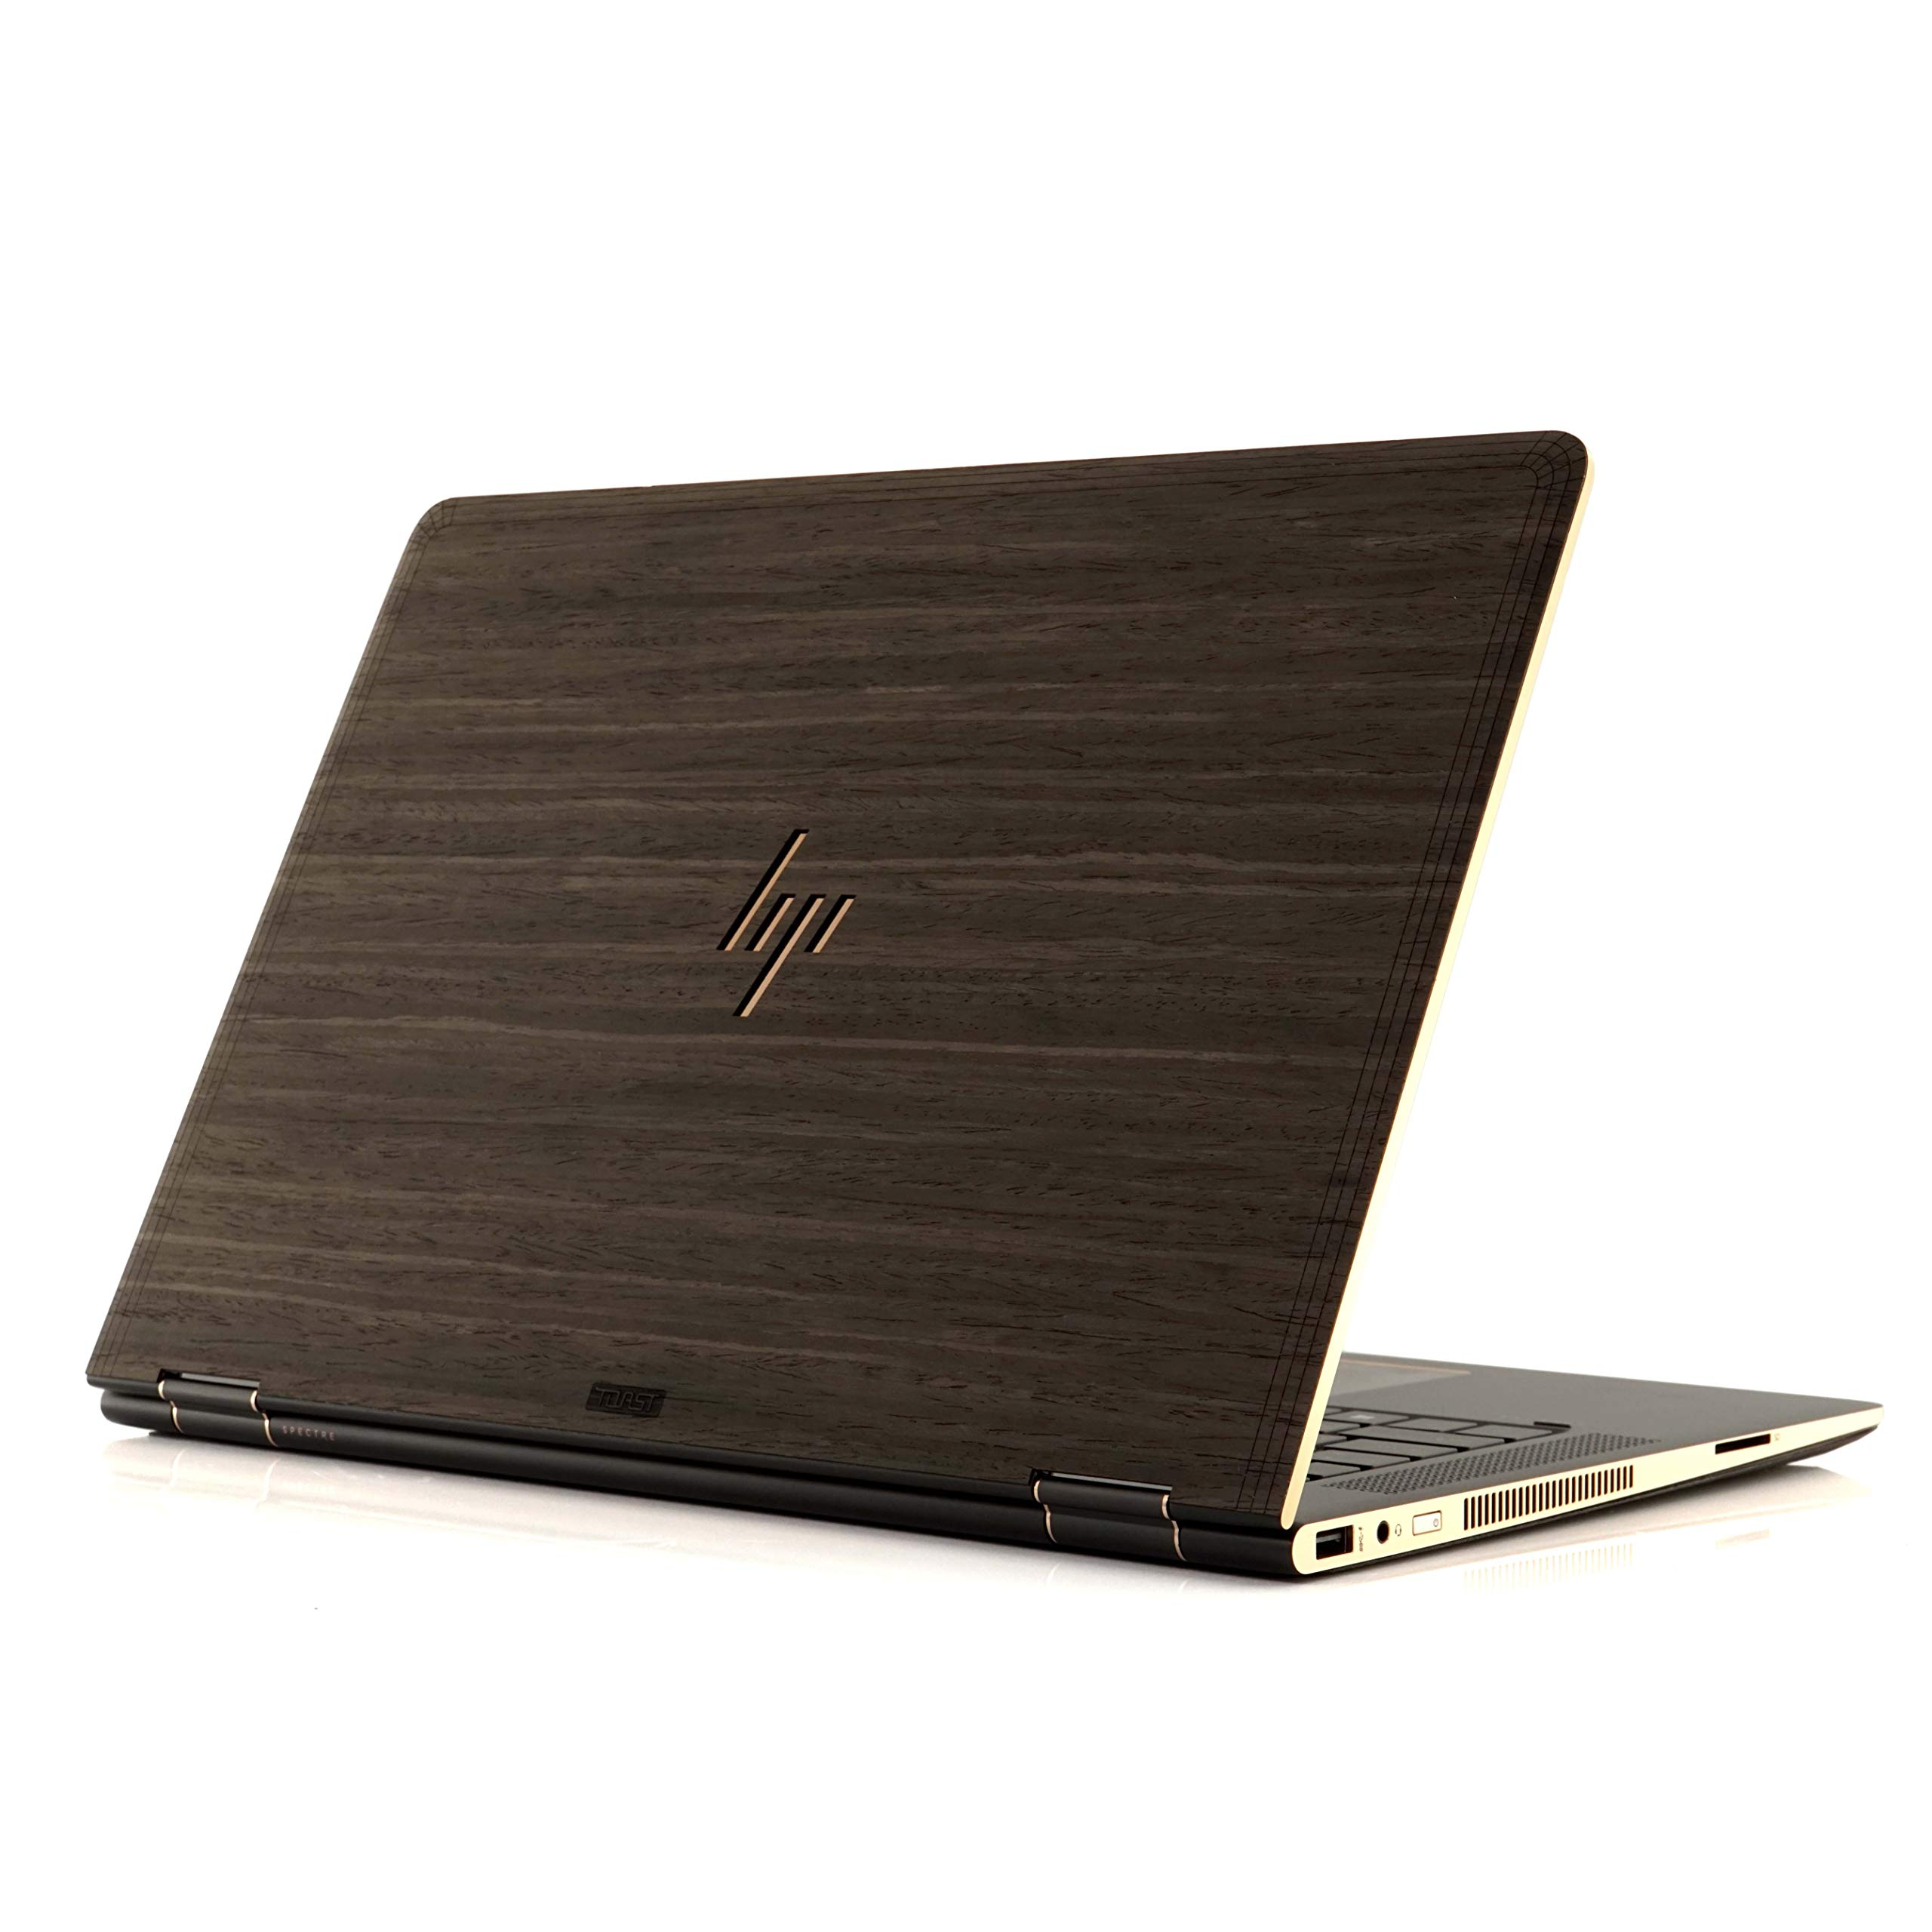 TOAST - Real Wood, Self-Adhesive Cover for HP Spectre X360 15'' 2017 Model - Ebony by Toast (Image #1)